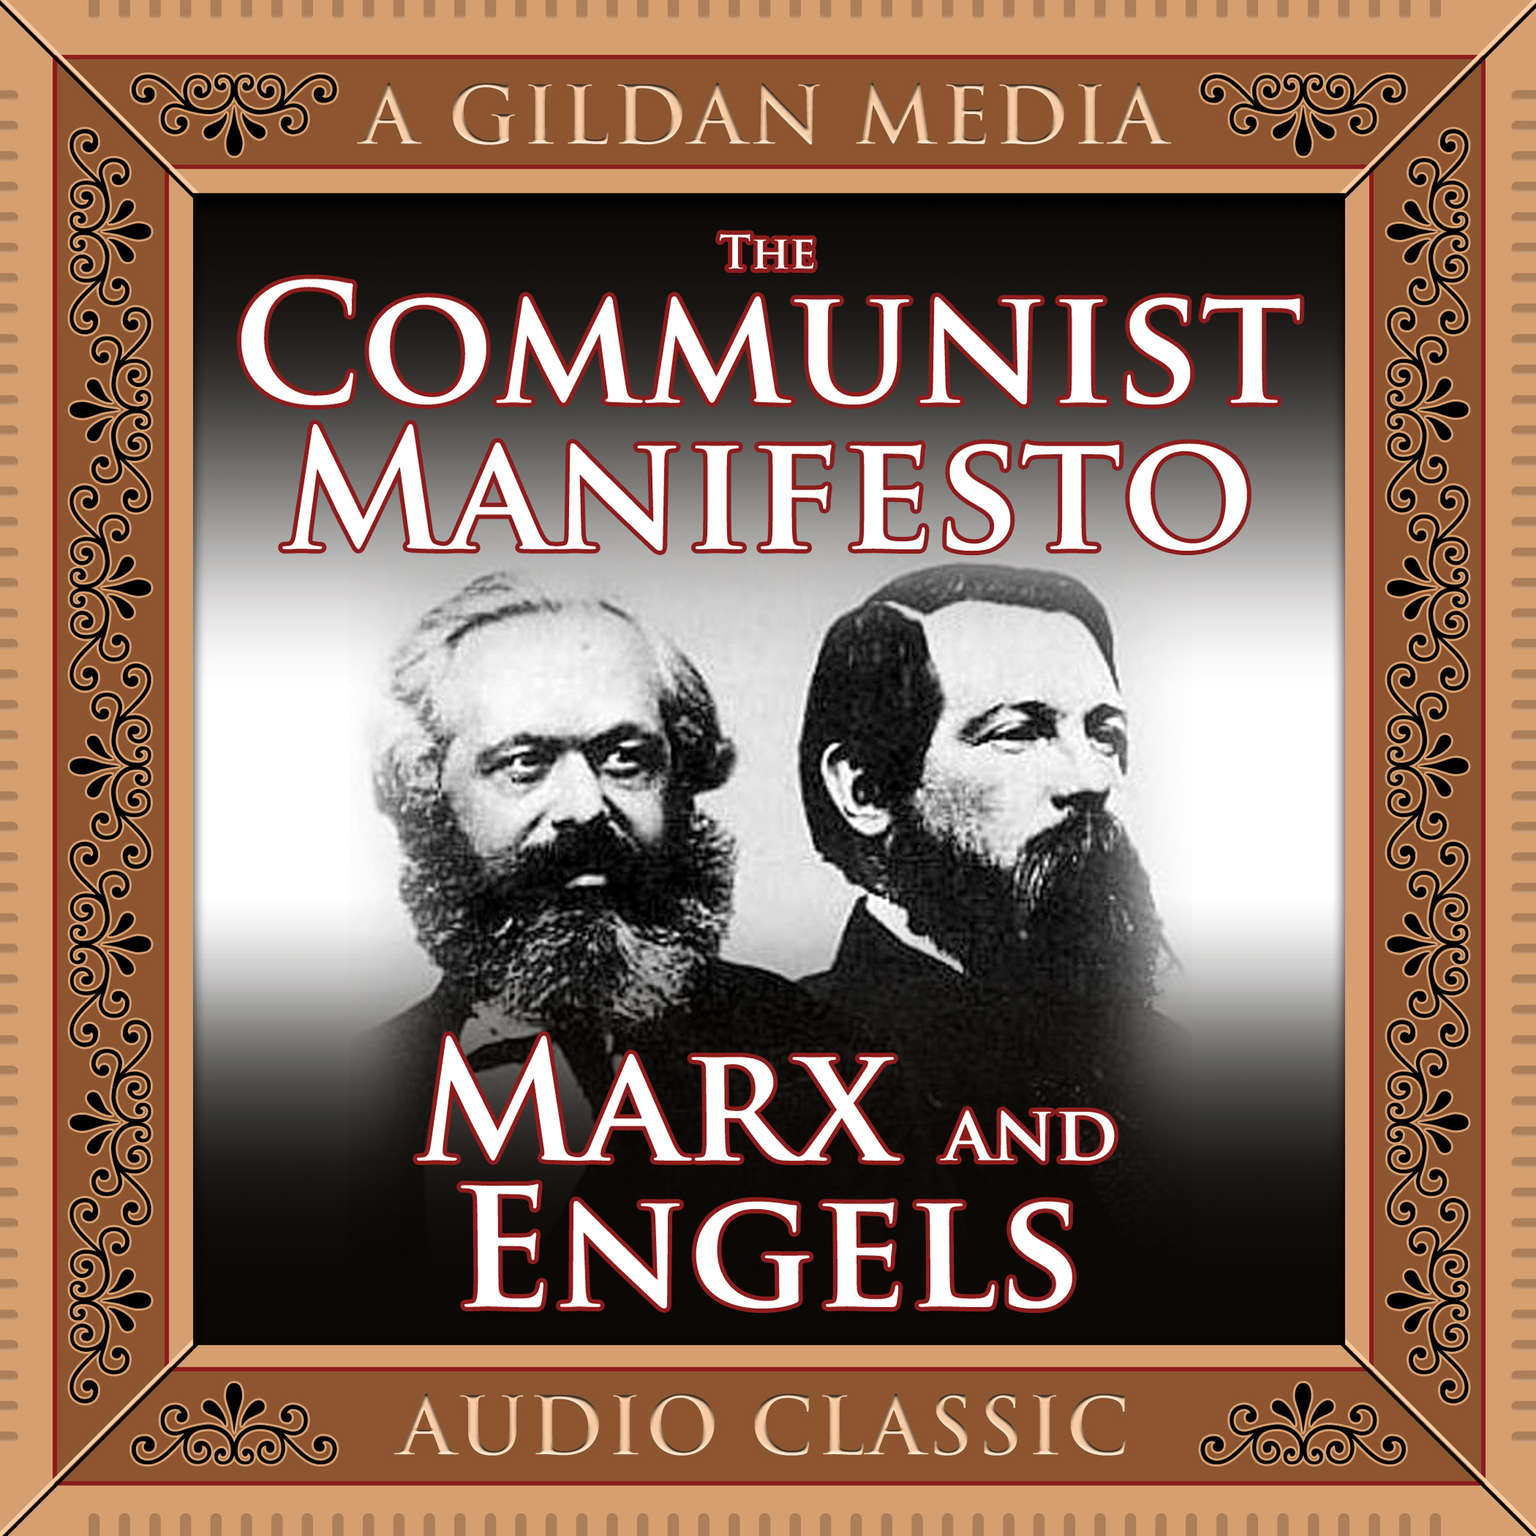 Download the communist manifesto karl marx [file(pdf,epub,txt)].